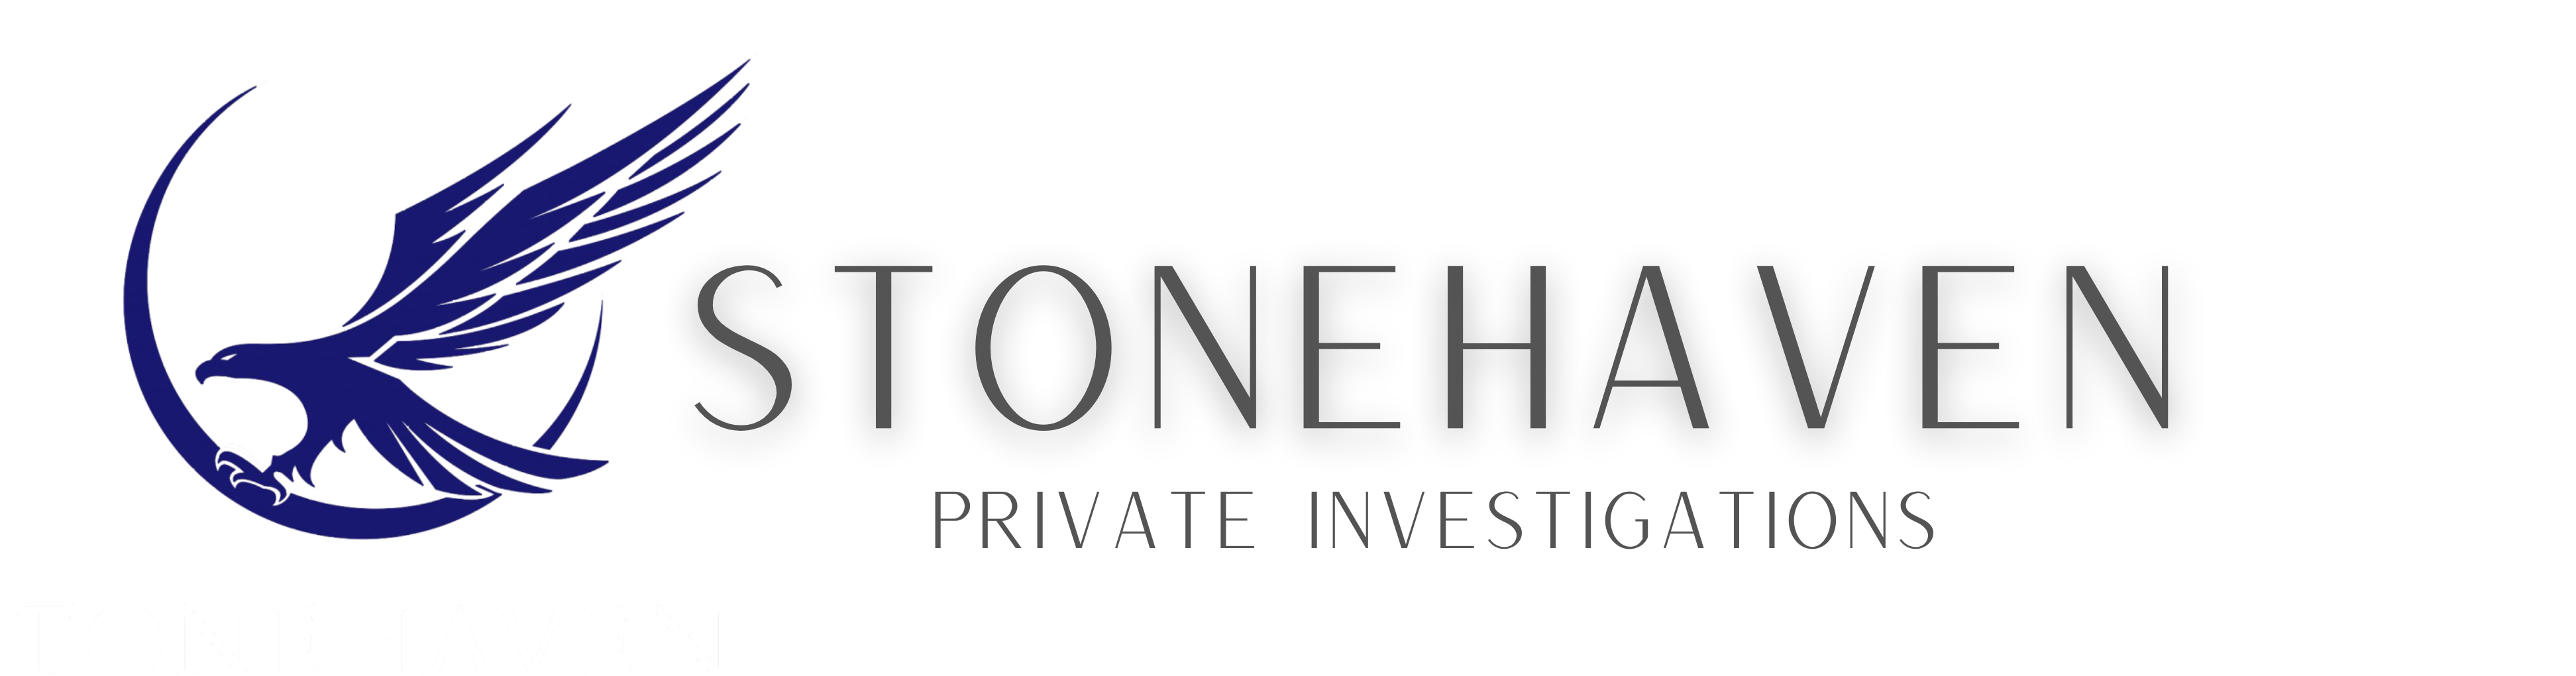 Stone Haven Private Investigations